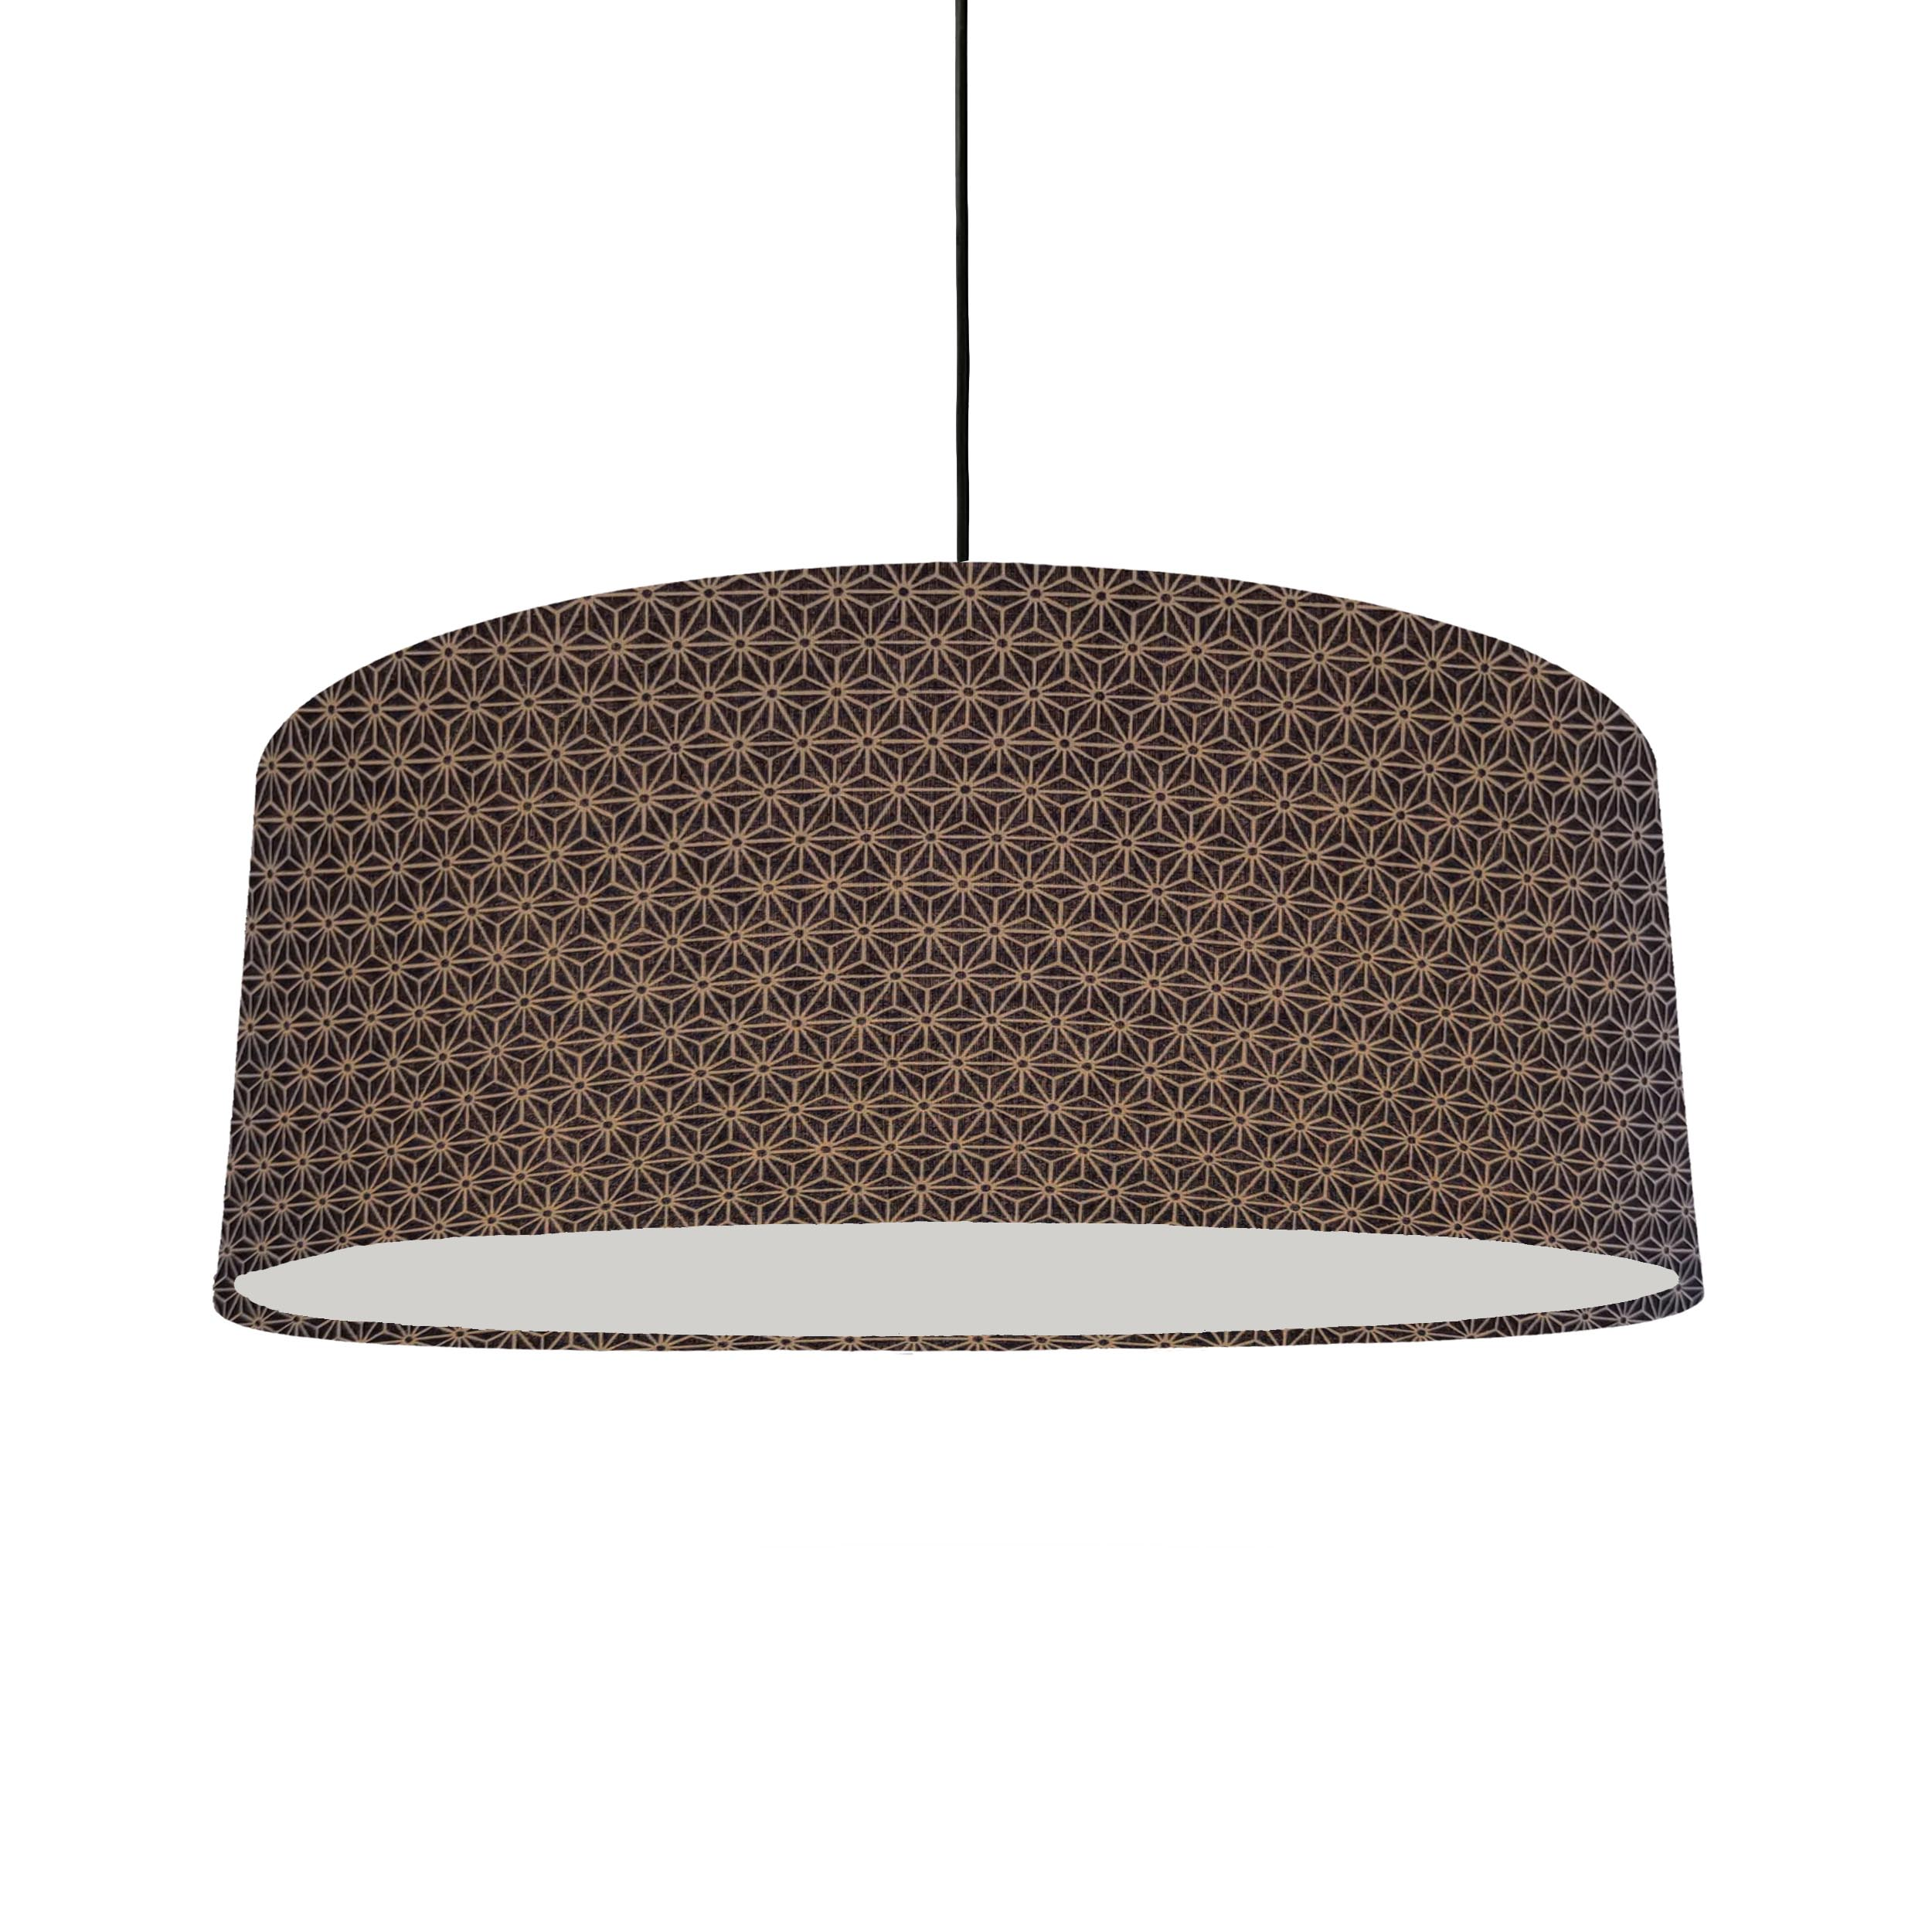 Extra Large Navy Kasuri Design Lampshade with Diffuser